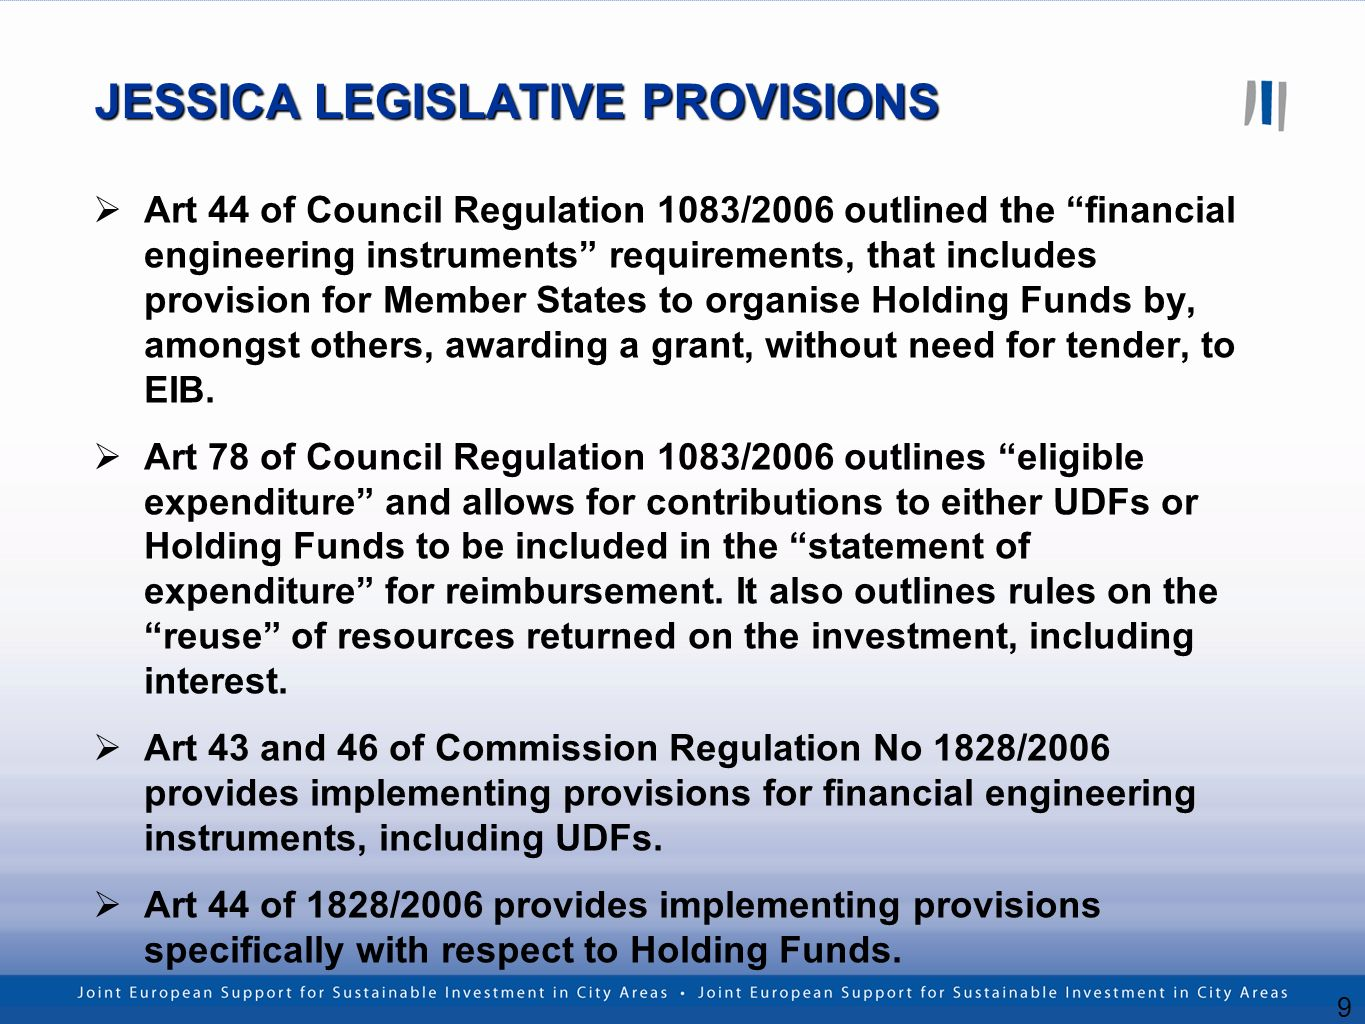 9 JESSICA LEGISLATIVE PROVISIONS Art 44 of Council Regulation 1083/2006 outlined the financial engineering instruments requirements, that includes provision for Member States to organise Holding Funds by, amongst others, awarding a grant, without need for tender, to EIB.